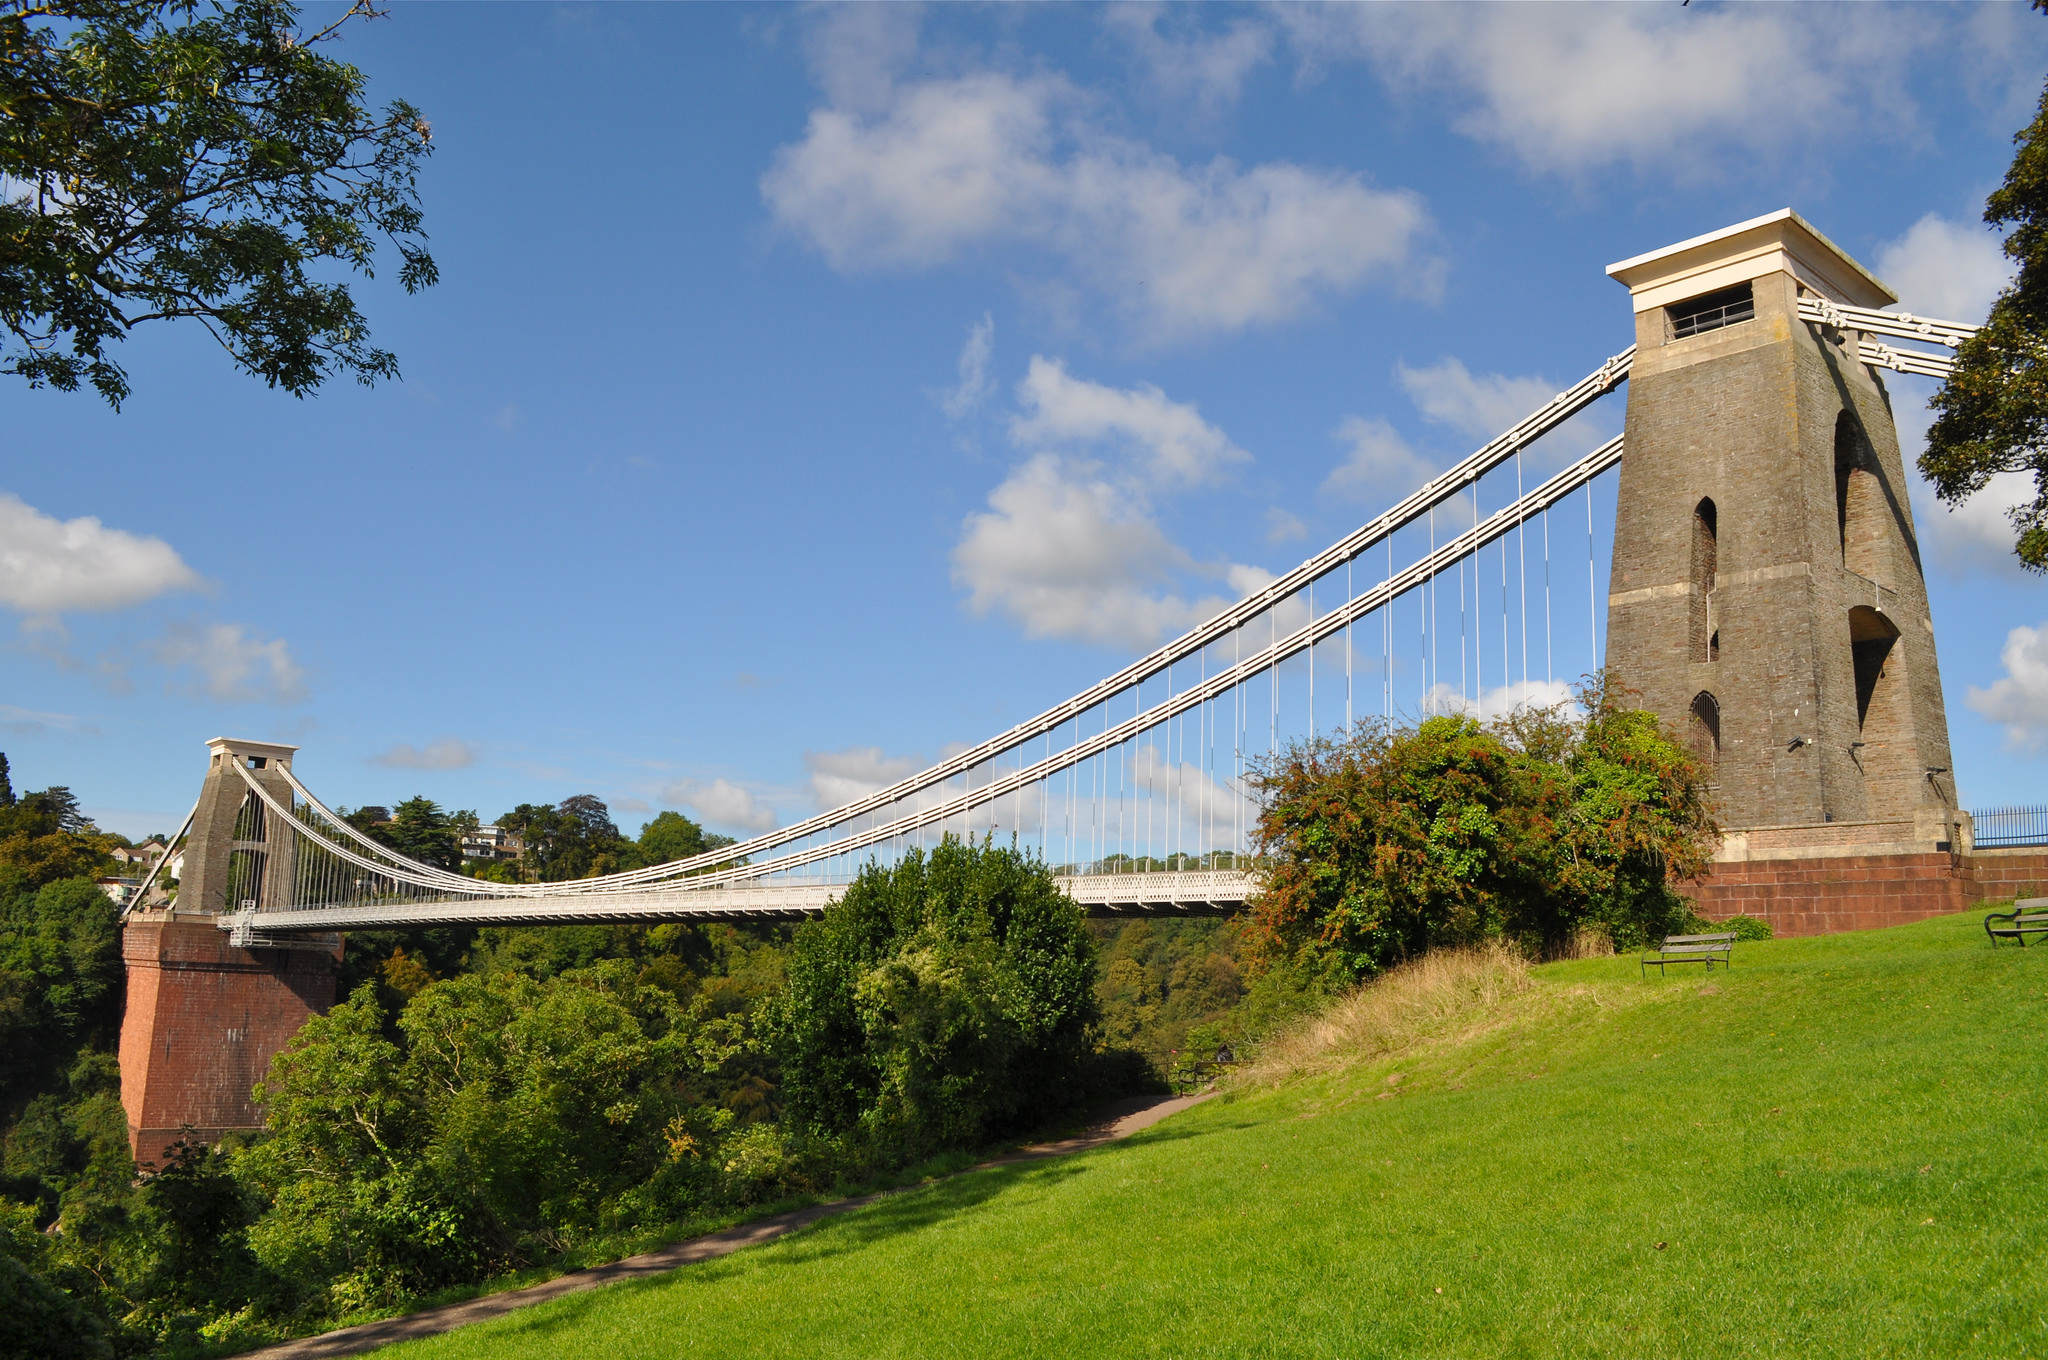 clifton suspension bridge Avon gorge hotel next to clifton suspension bridge, bristol come and visit us at the bridge cafe for breakfast, lunch, afternoon tea or dinner.